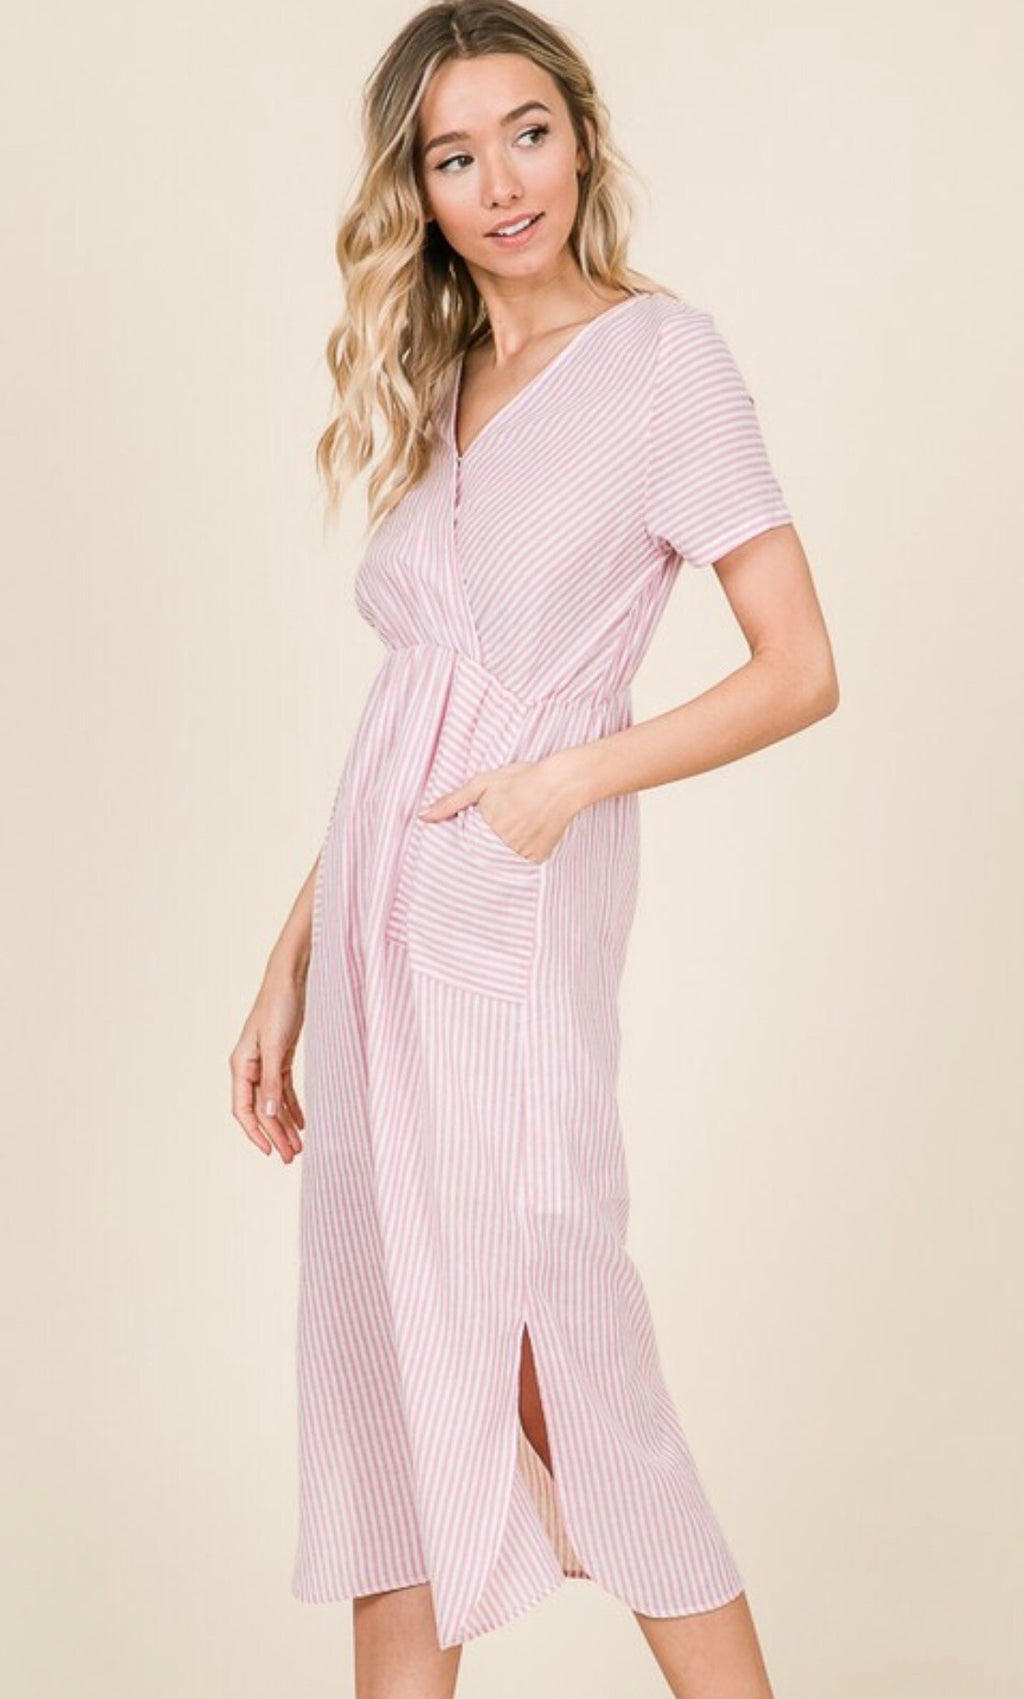 The Sunset Coral striped dress